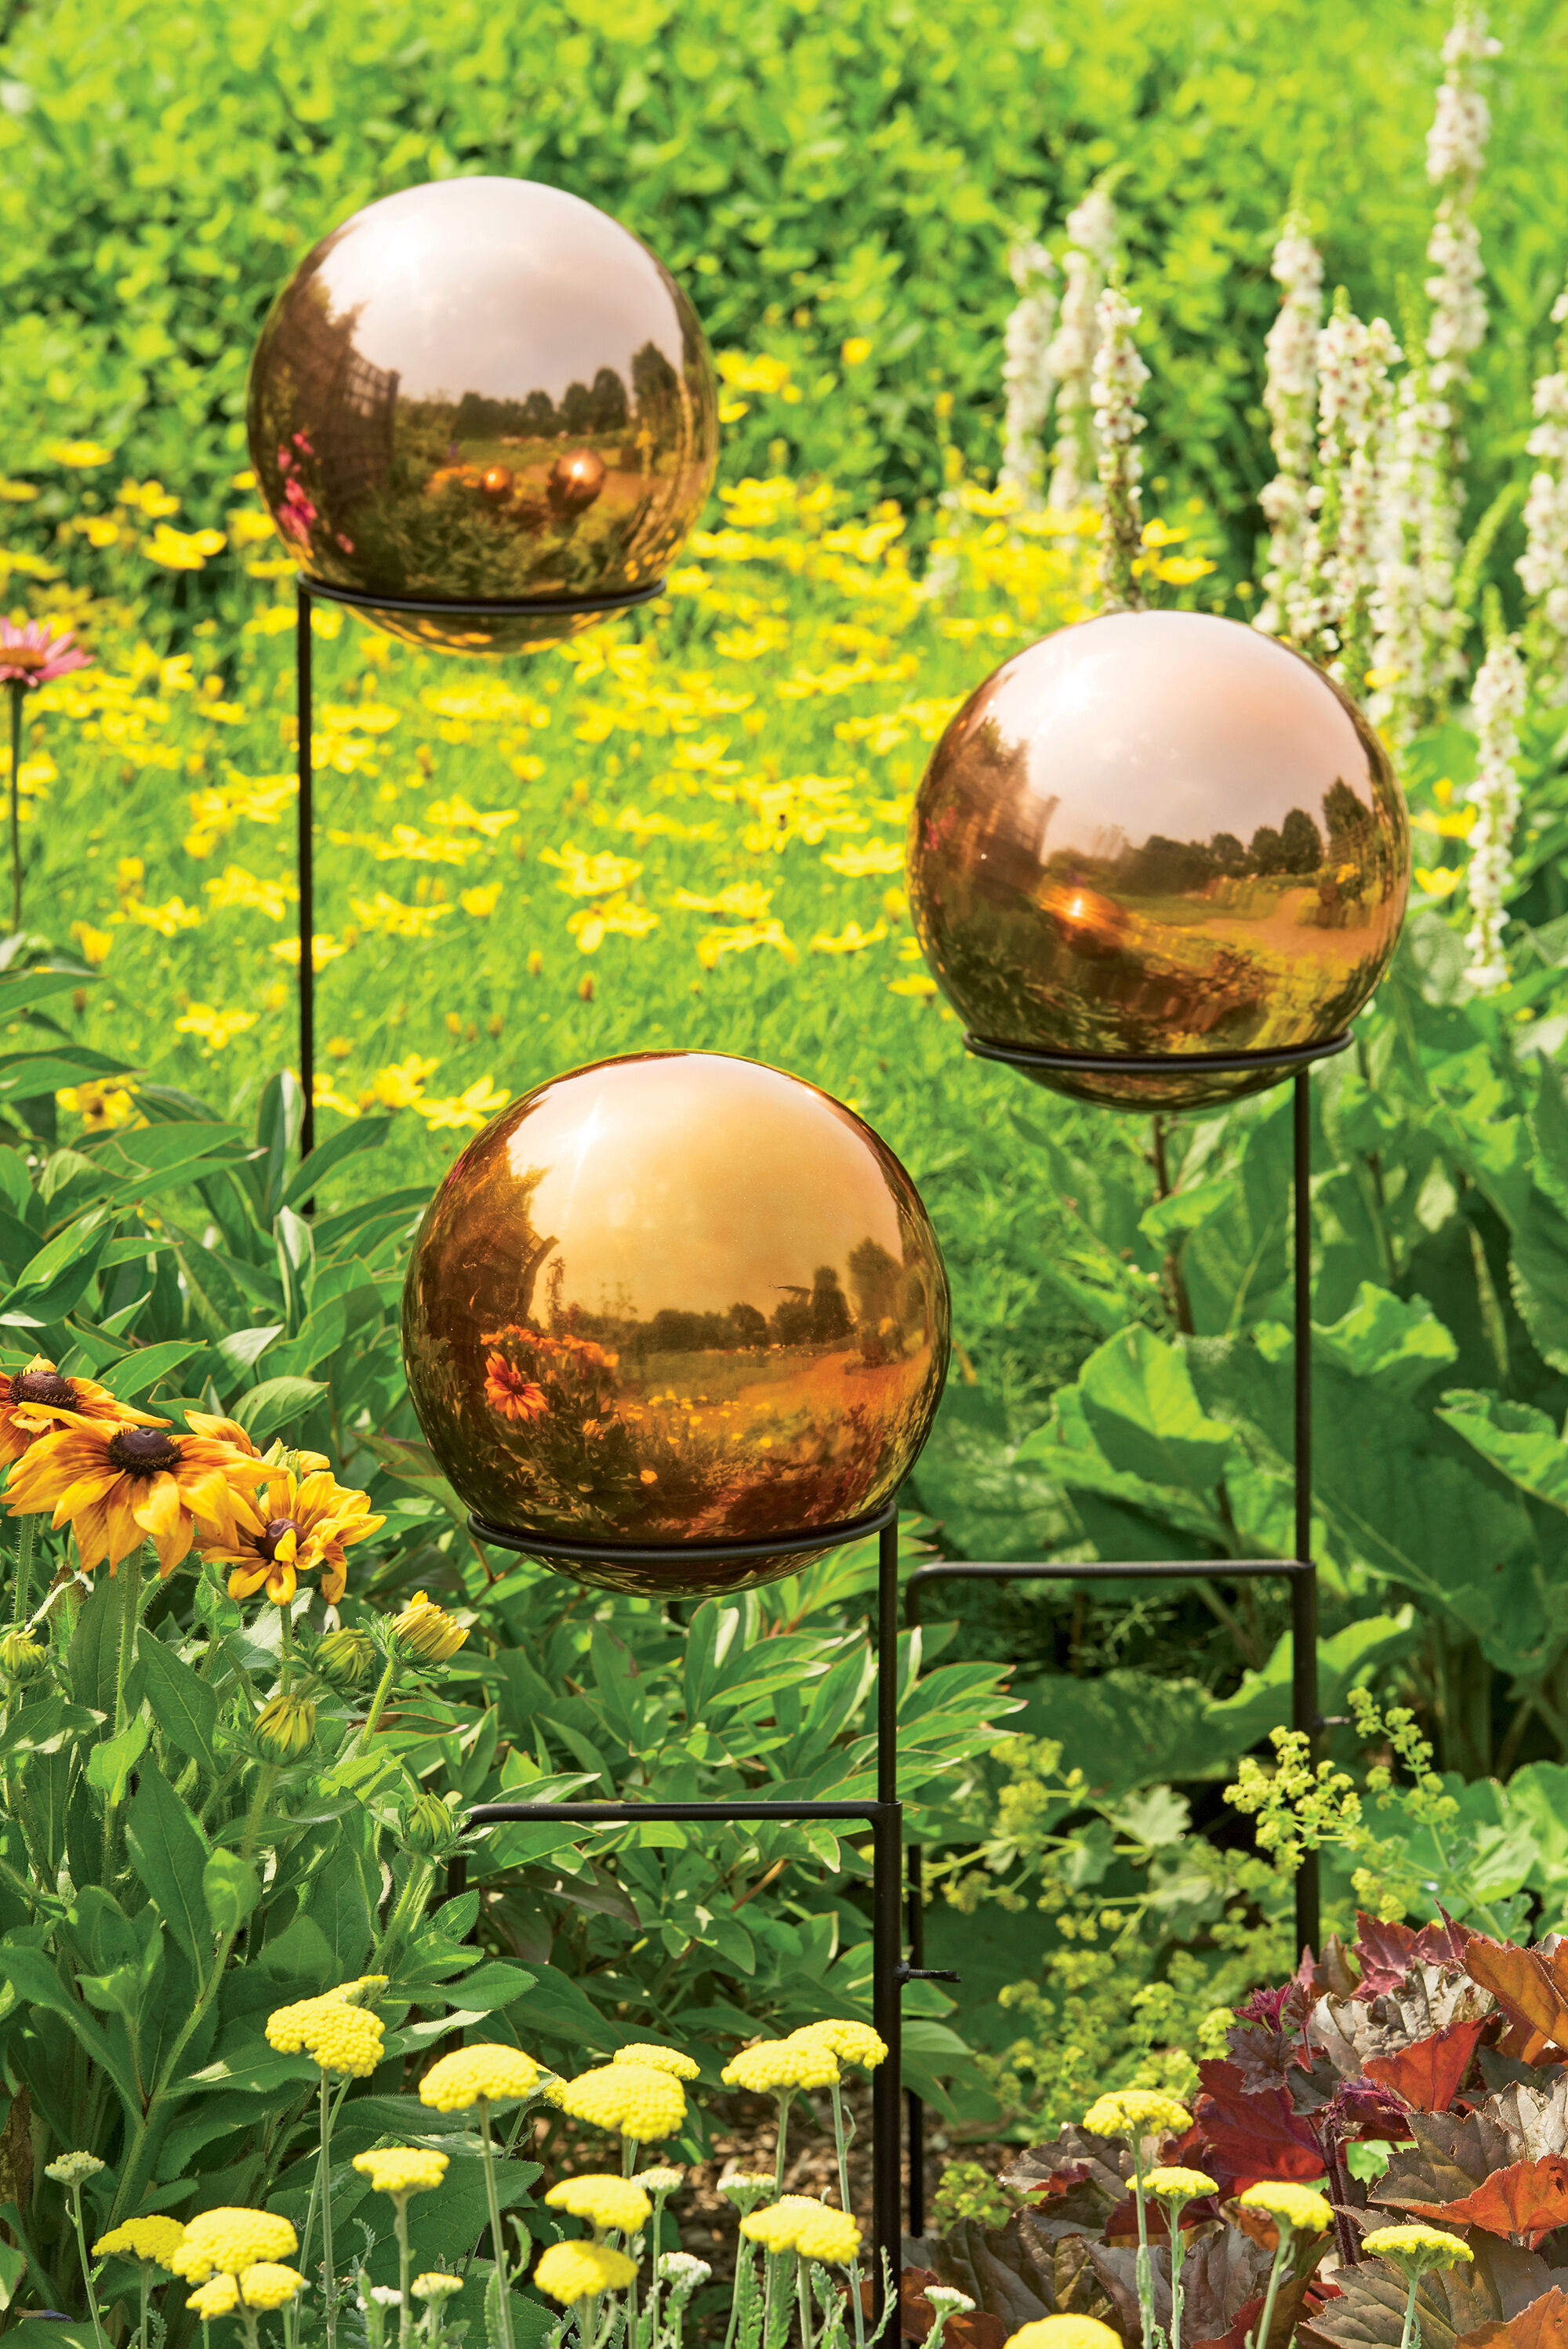 Ordinaire Copper Stainless Steel Gazing Globe